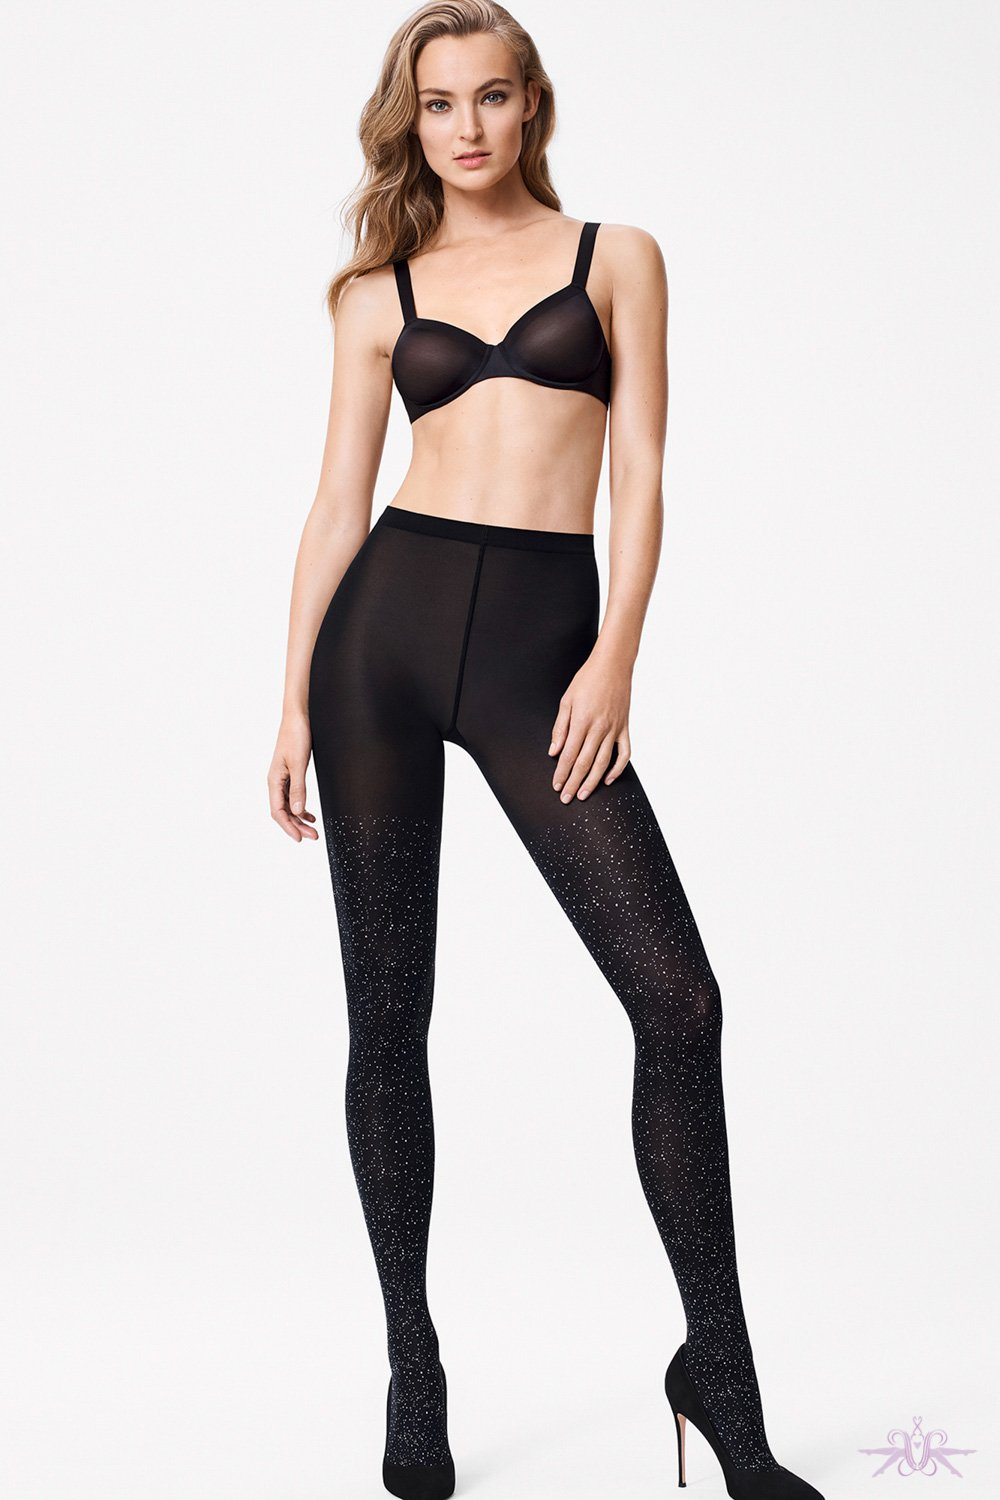 Wolford Luna Tights - The Hosiery Box